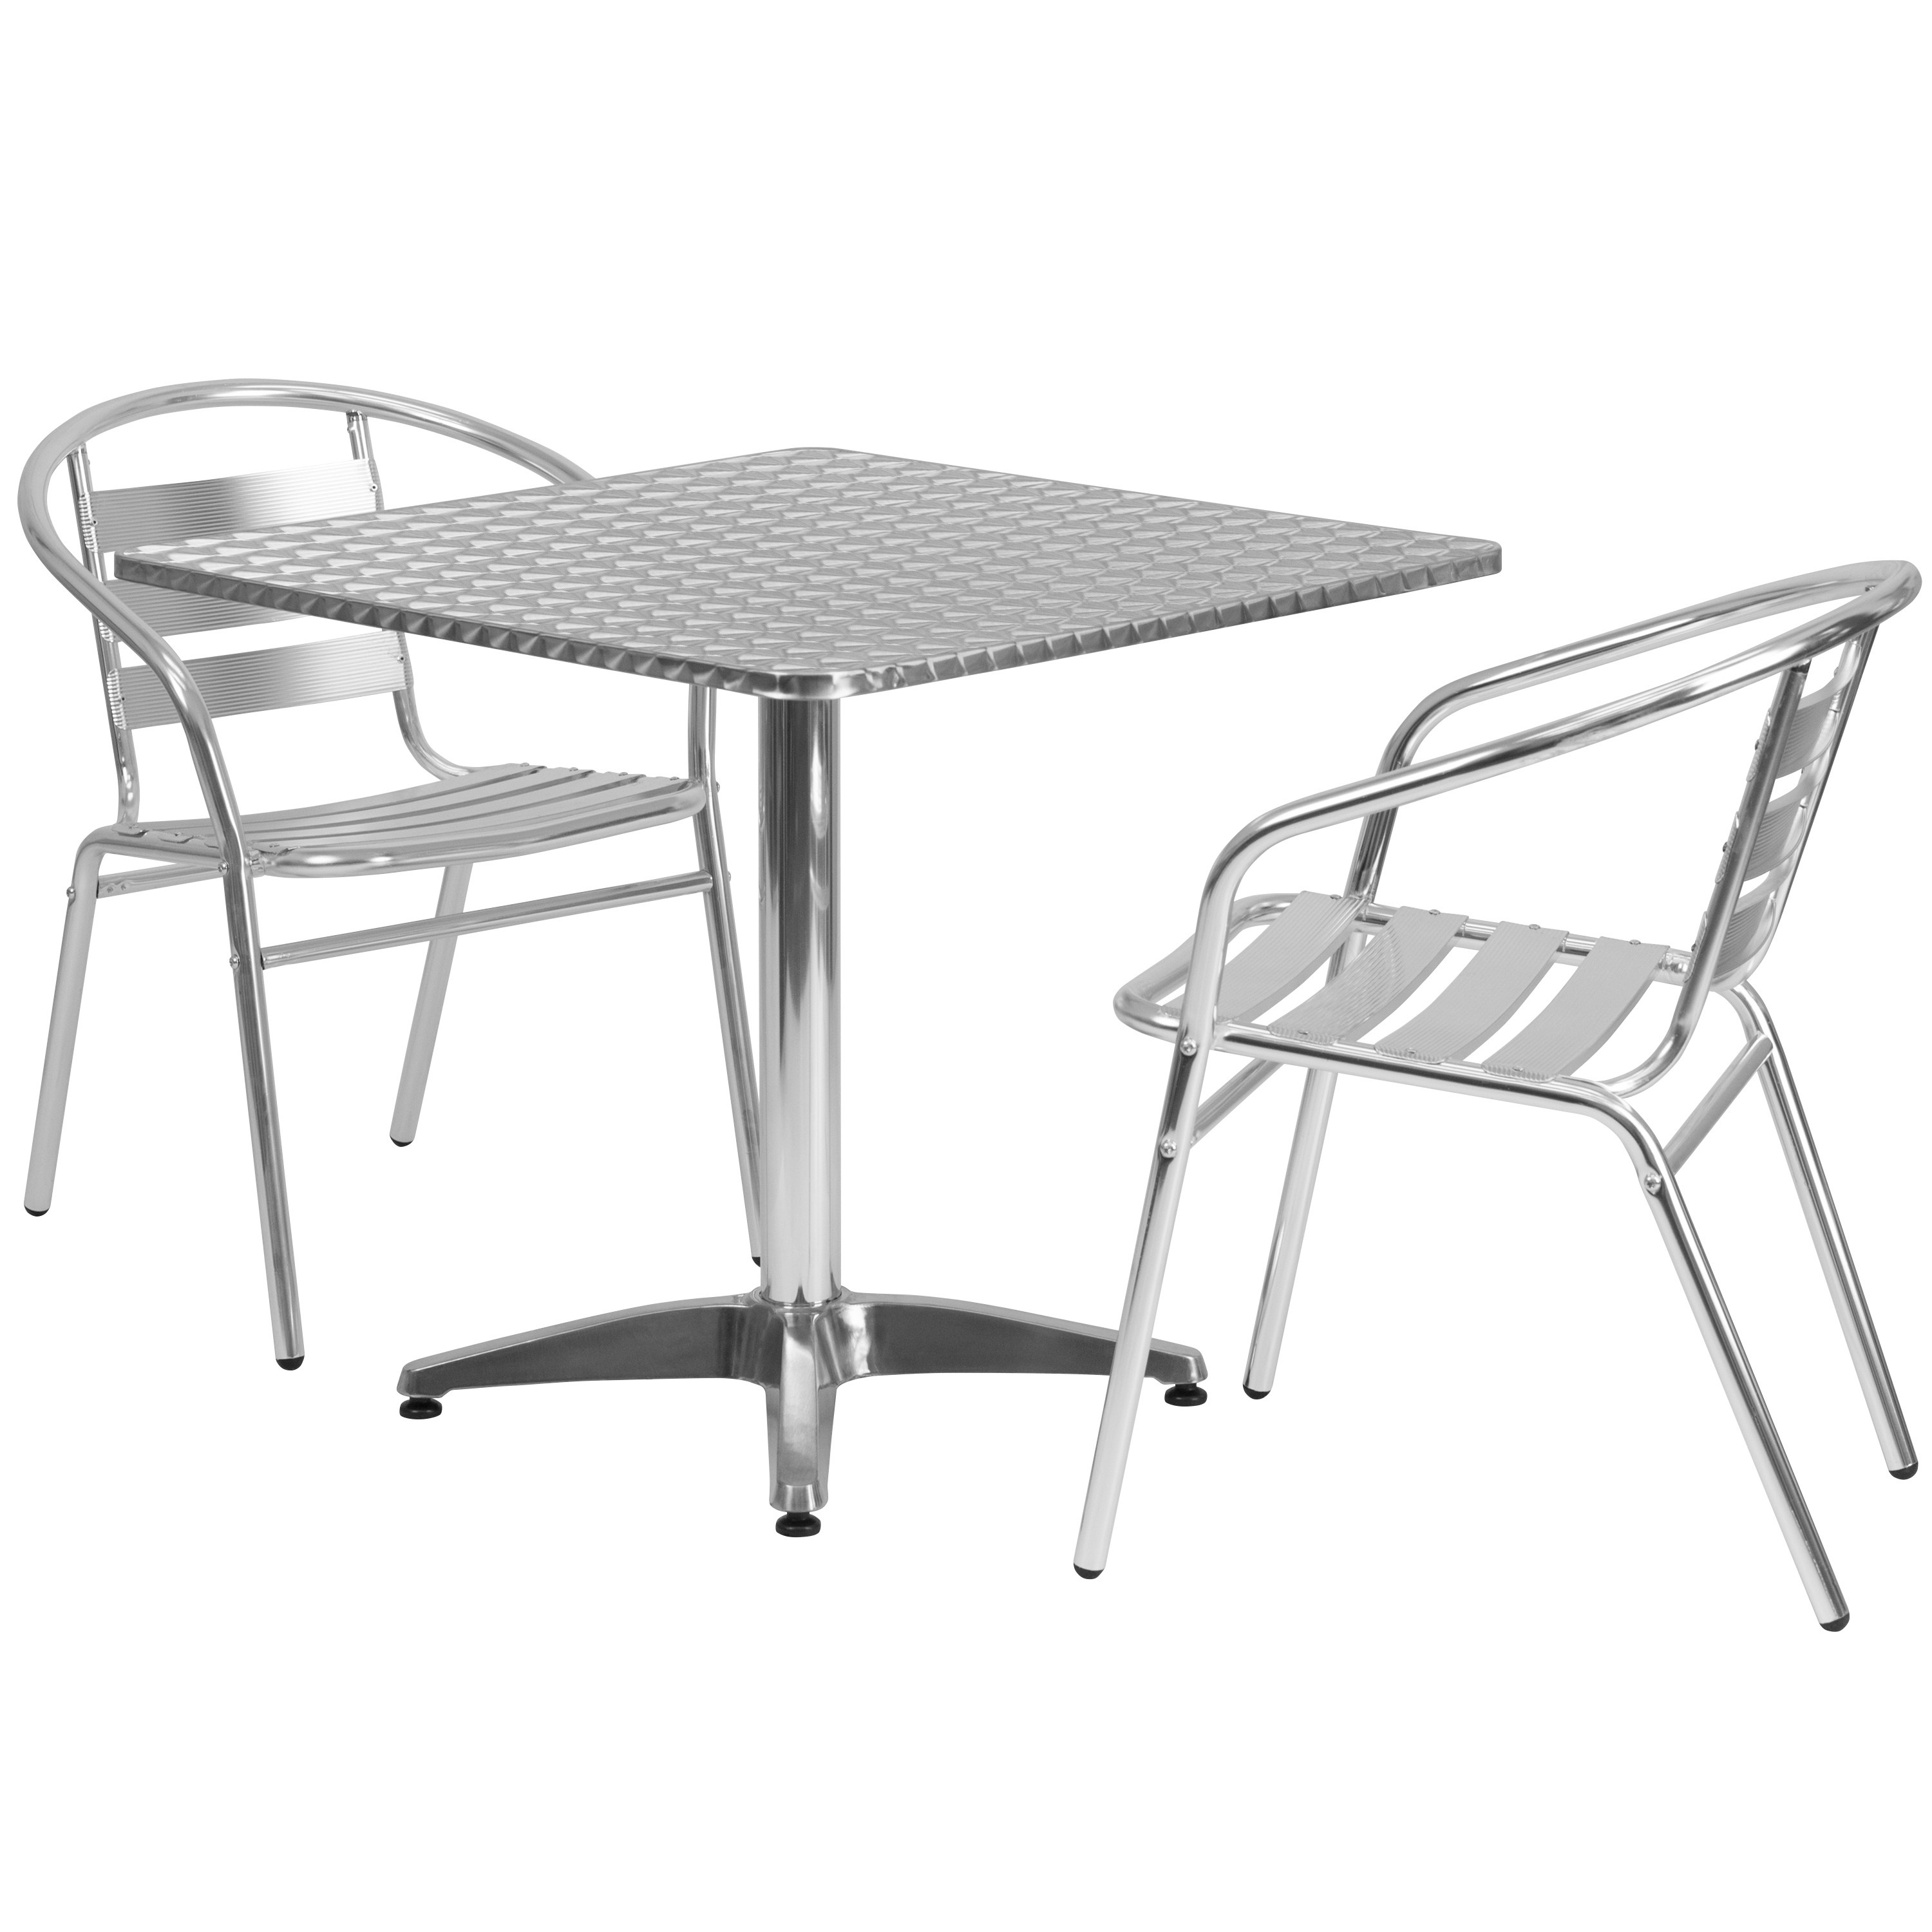 Lancaster Home 31.5-foot Square Aluminum Indoor/ Outdoor Table with 2 Slat Back Chairs